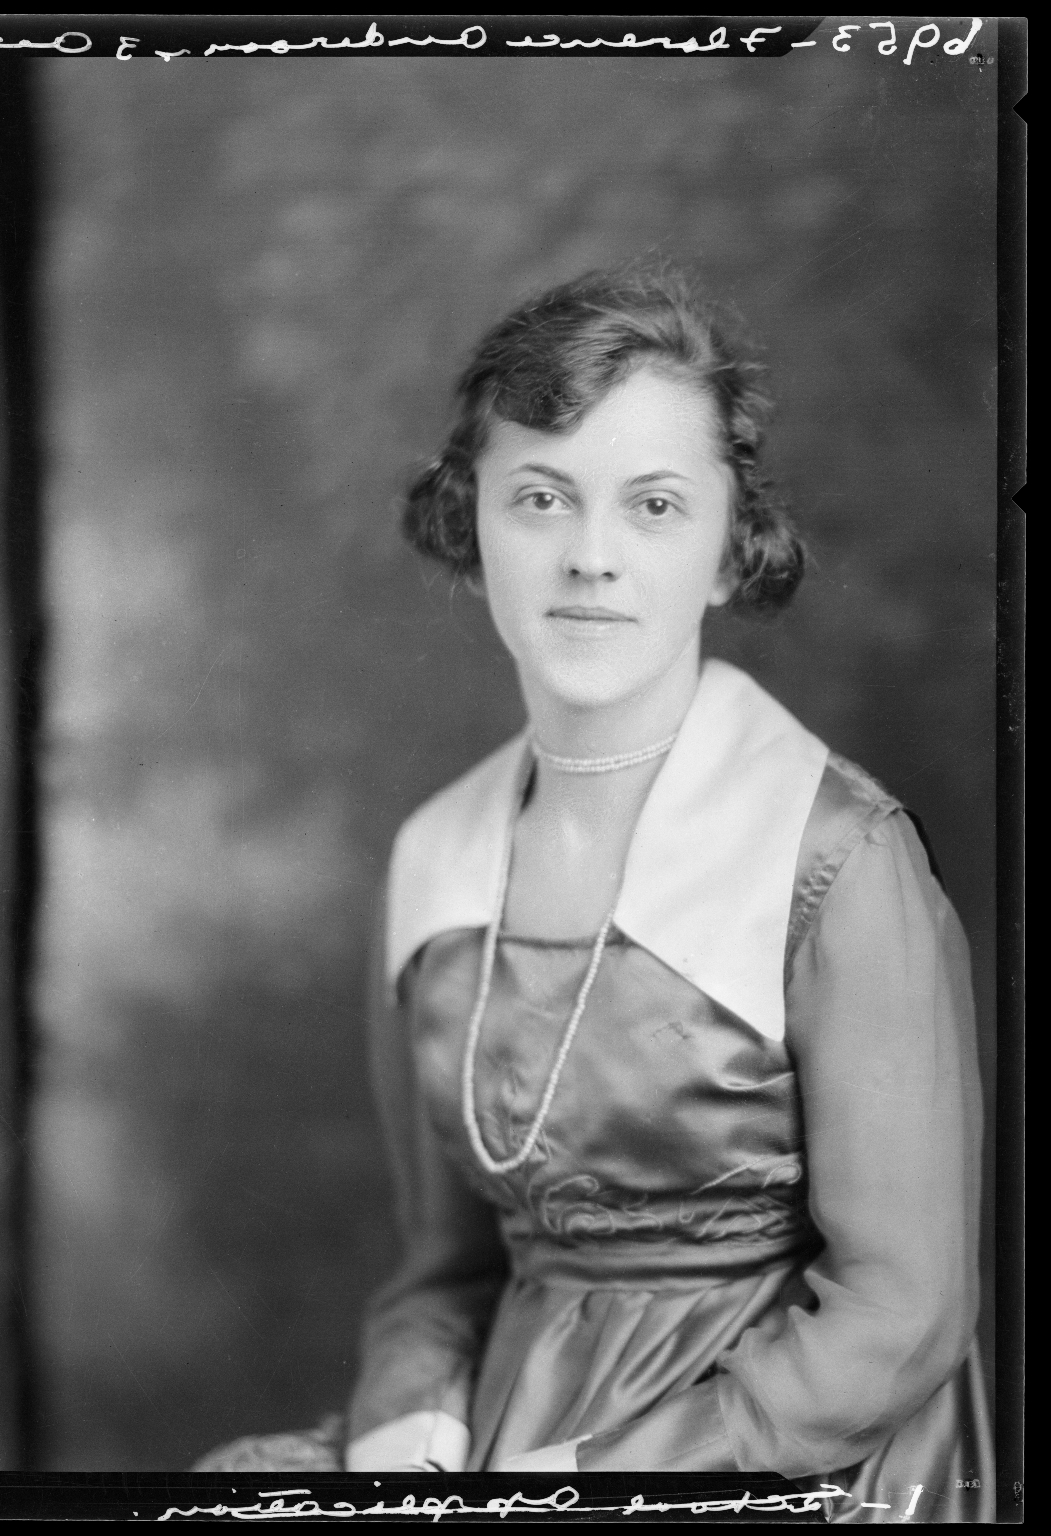 Portrait of Florence Anderson